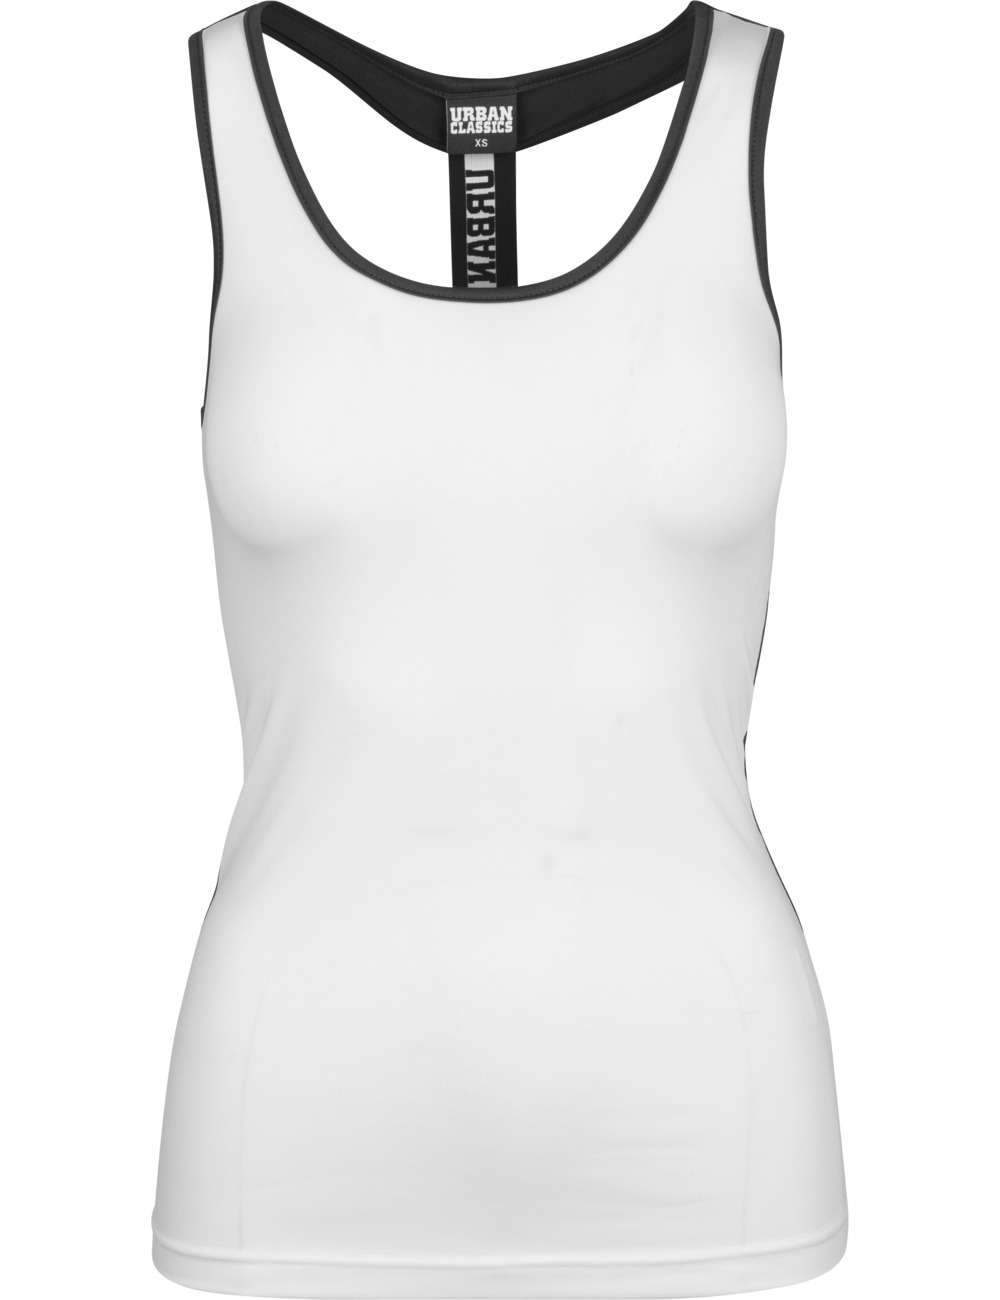 urban-classics-ladies-sports-top